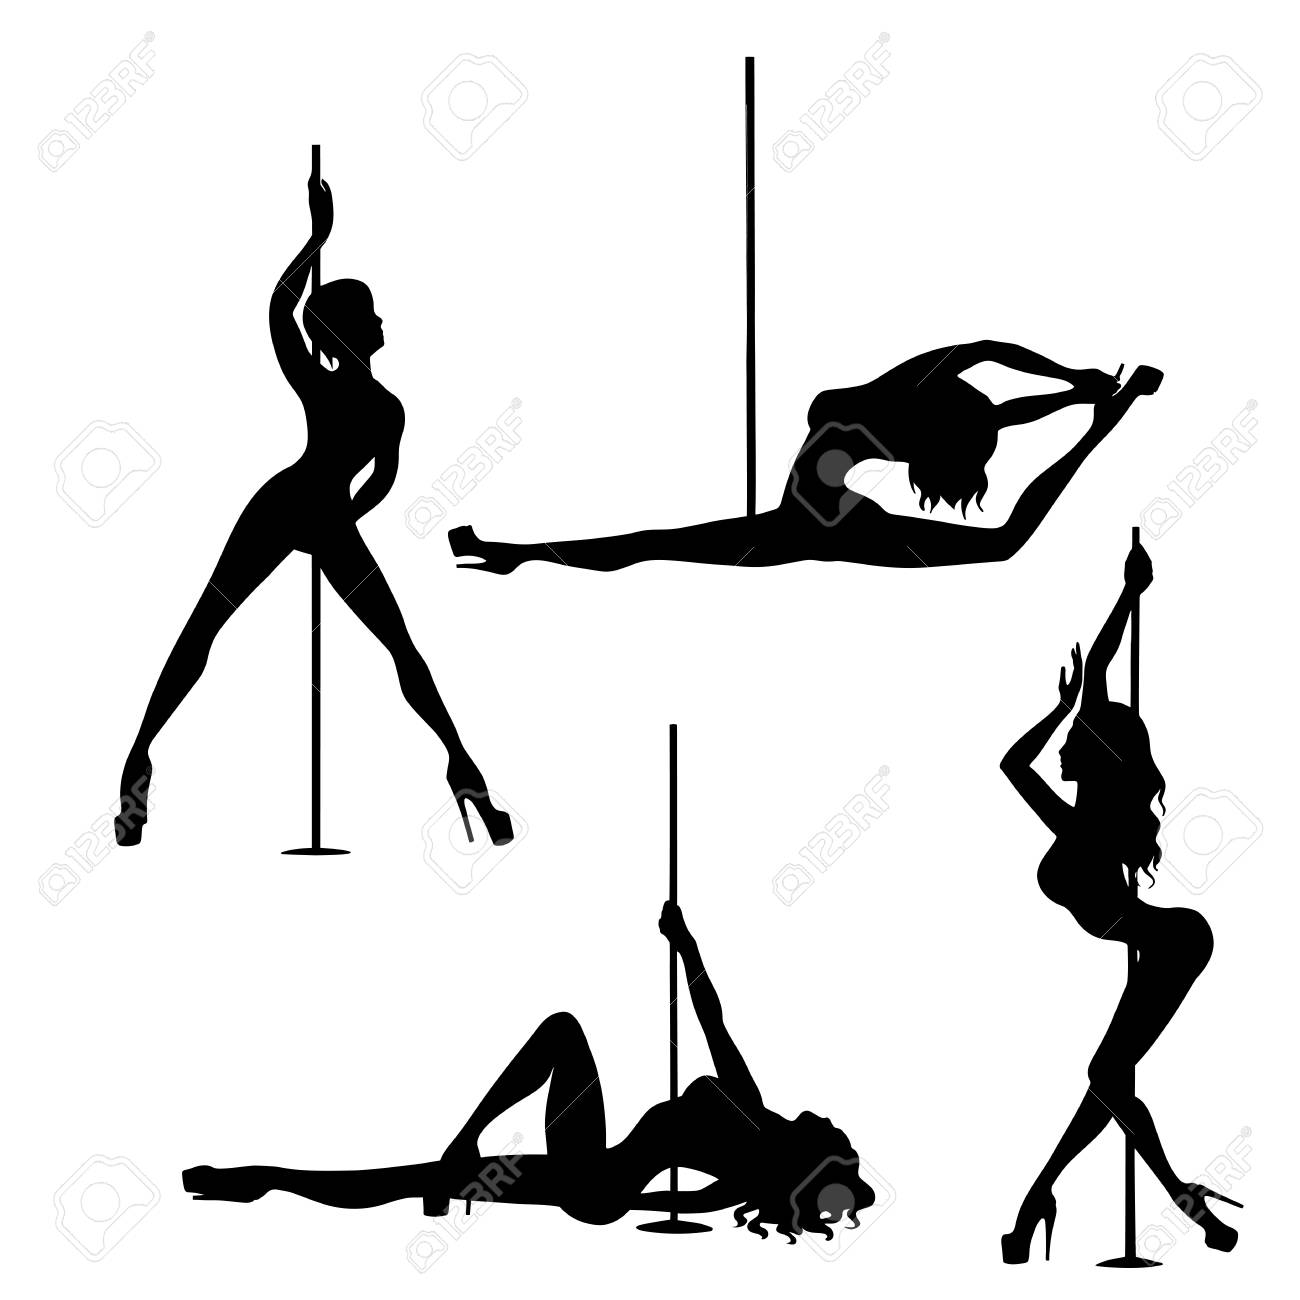 Set Of Silhouette Pole Dance Exotic Royalty Free Cliparts Vectors And Stock Illustration Image 103745306